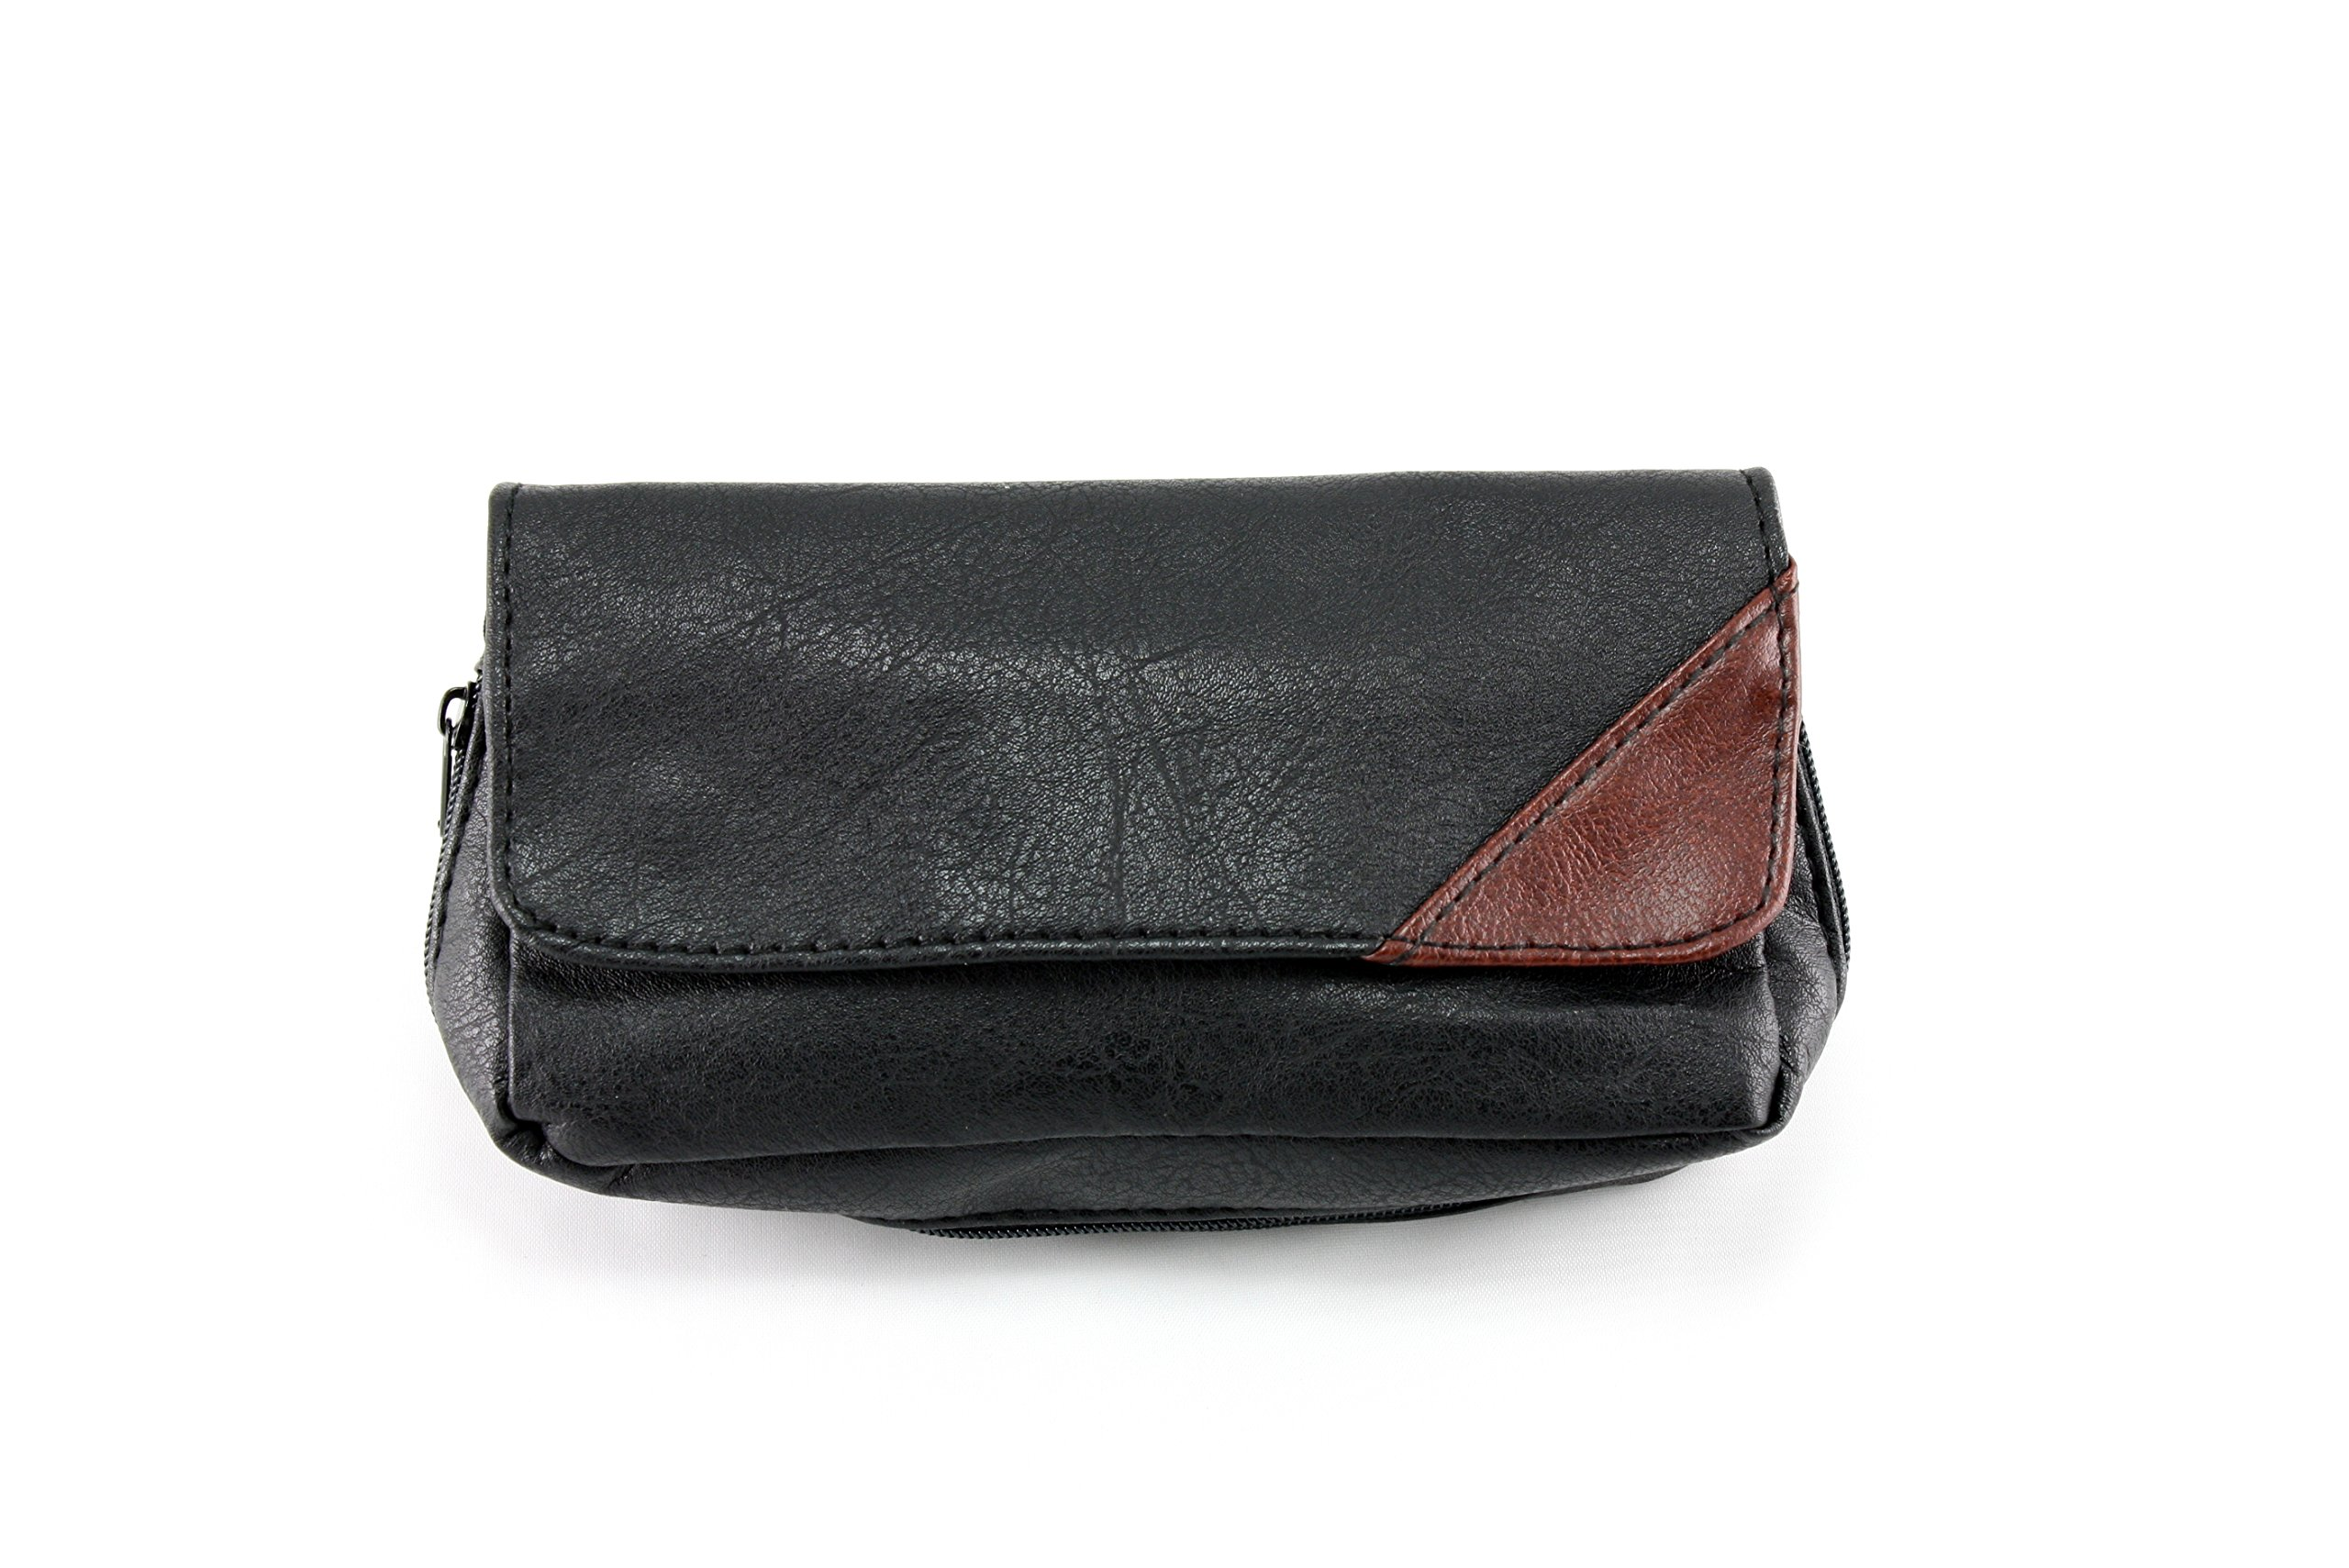 Skyway Cedric 2 Pipe Tobacco Pouch Case